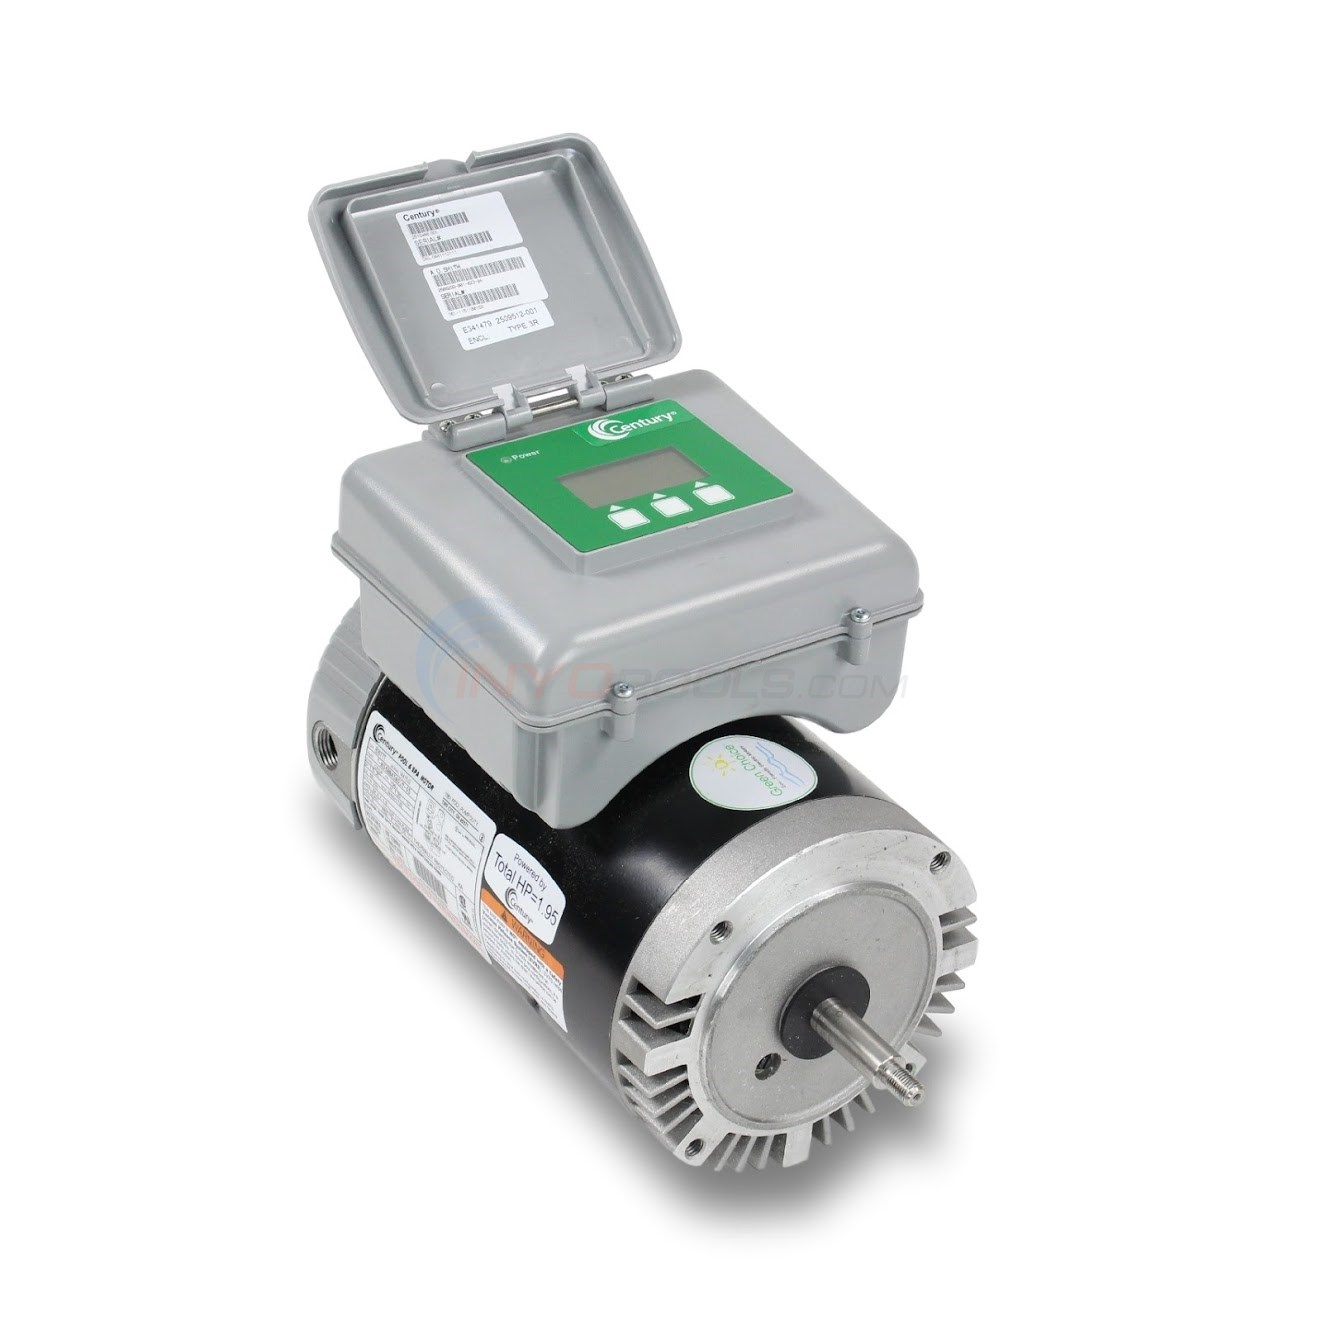 1.5 HP Full Rate Two Speed Motor W/ Timer - Round Flange (B977T, B2977T)